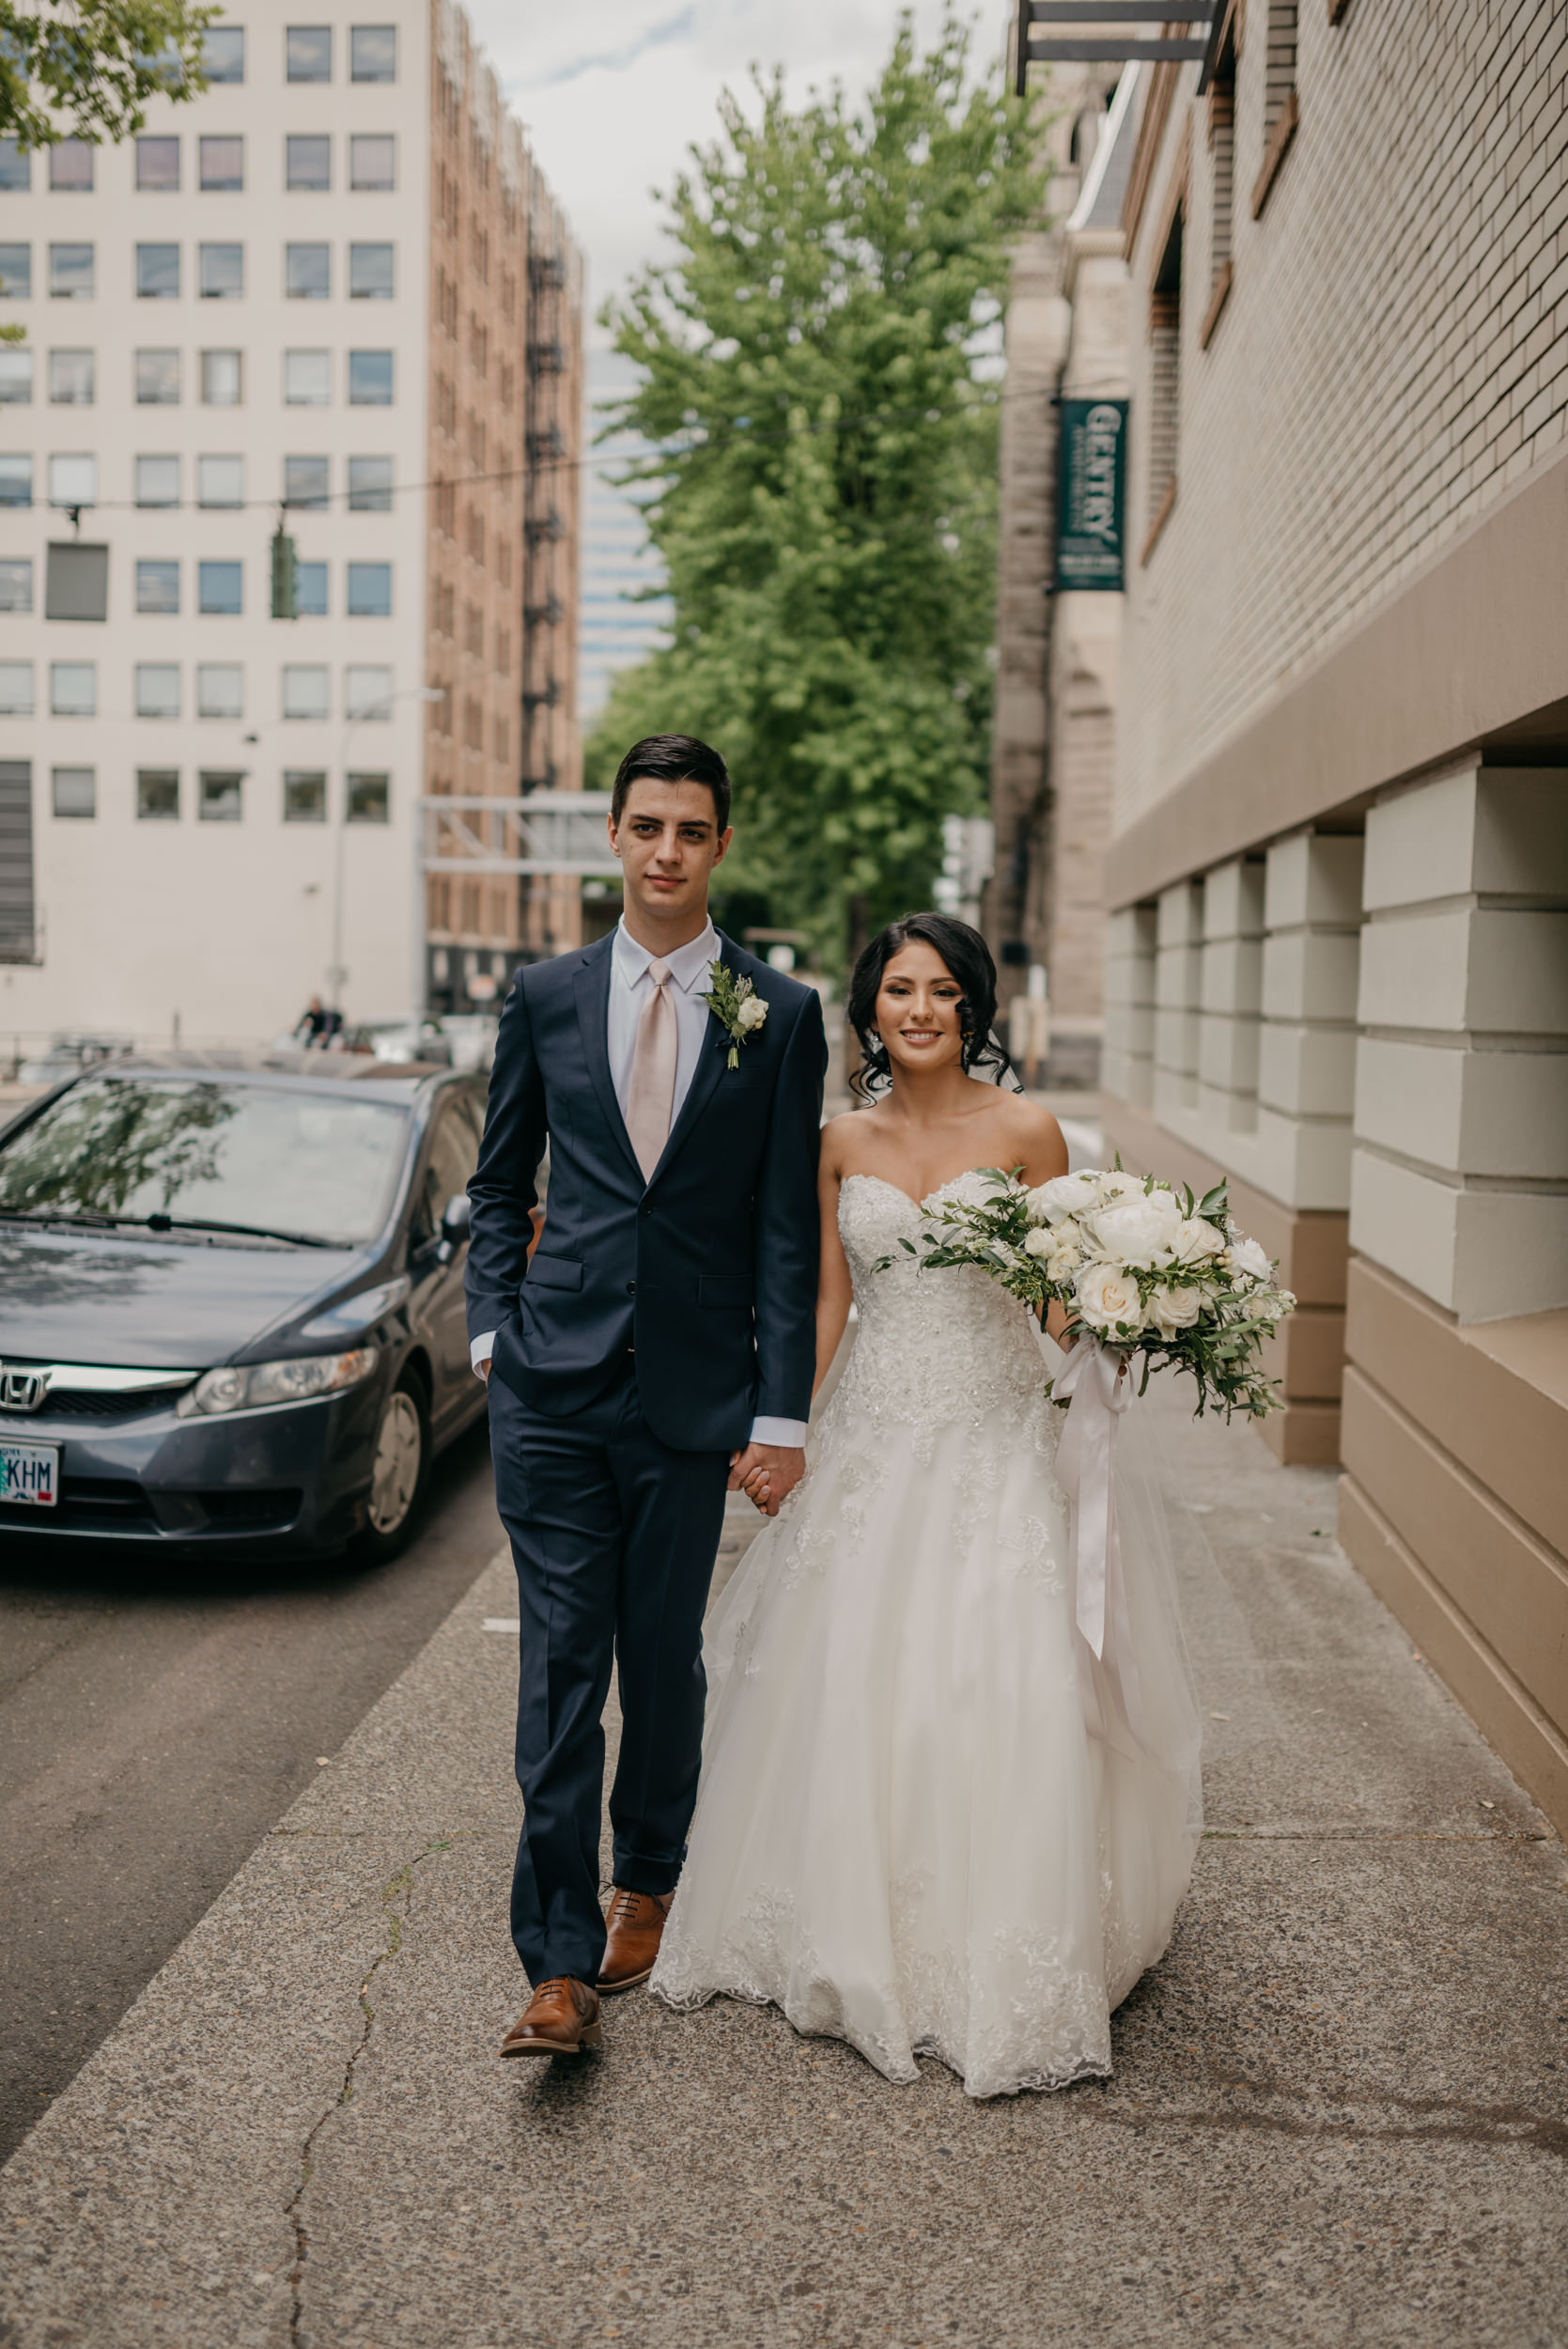 56-bridal-party-downtown-portland-first-look-7609.jpg